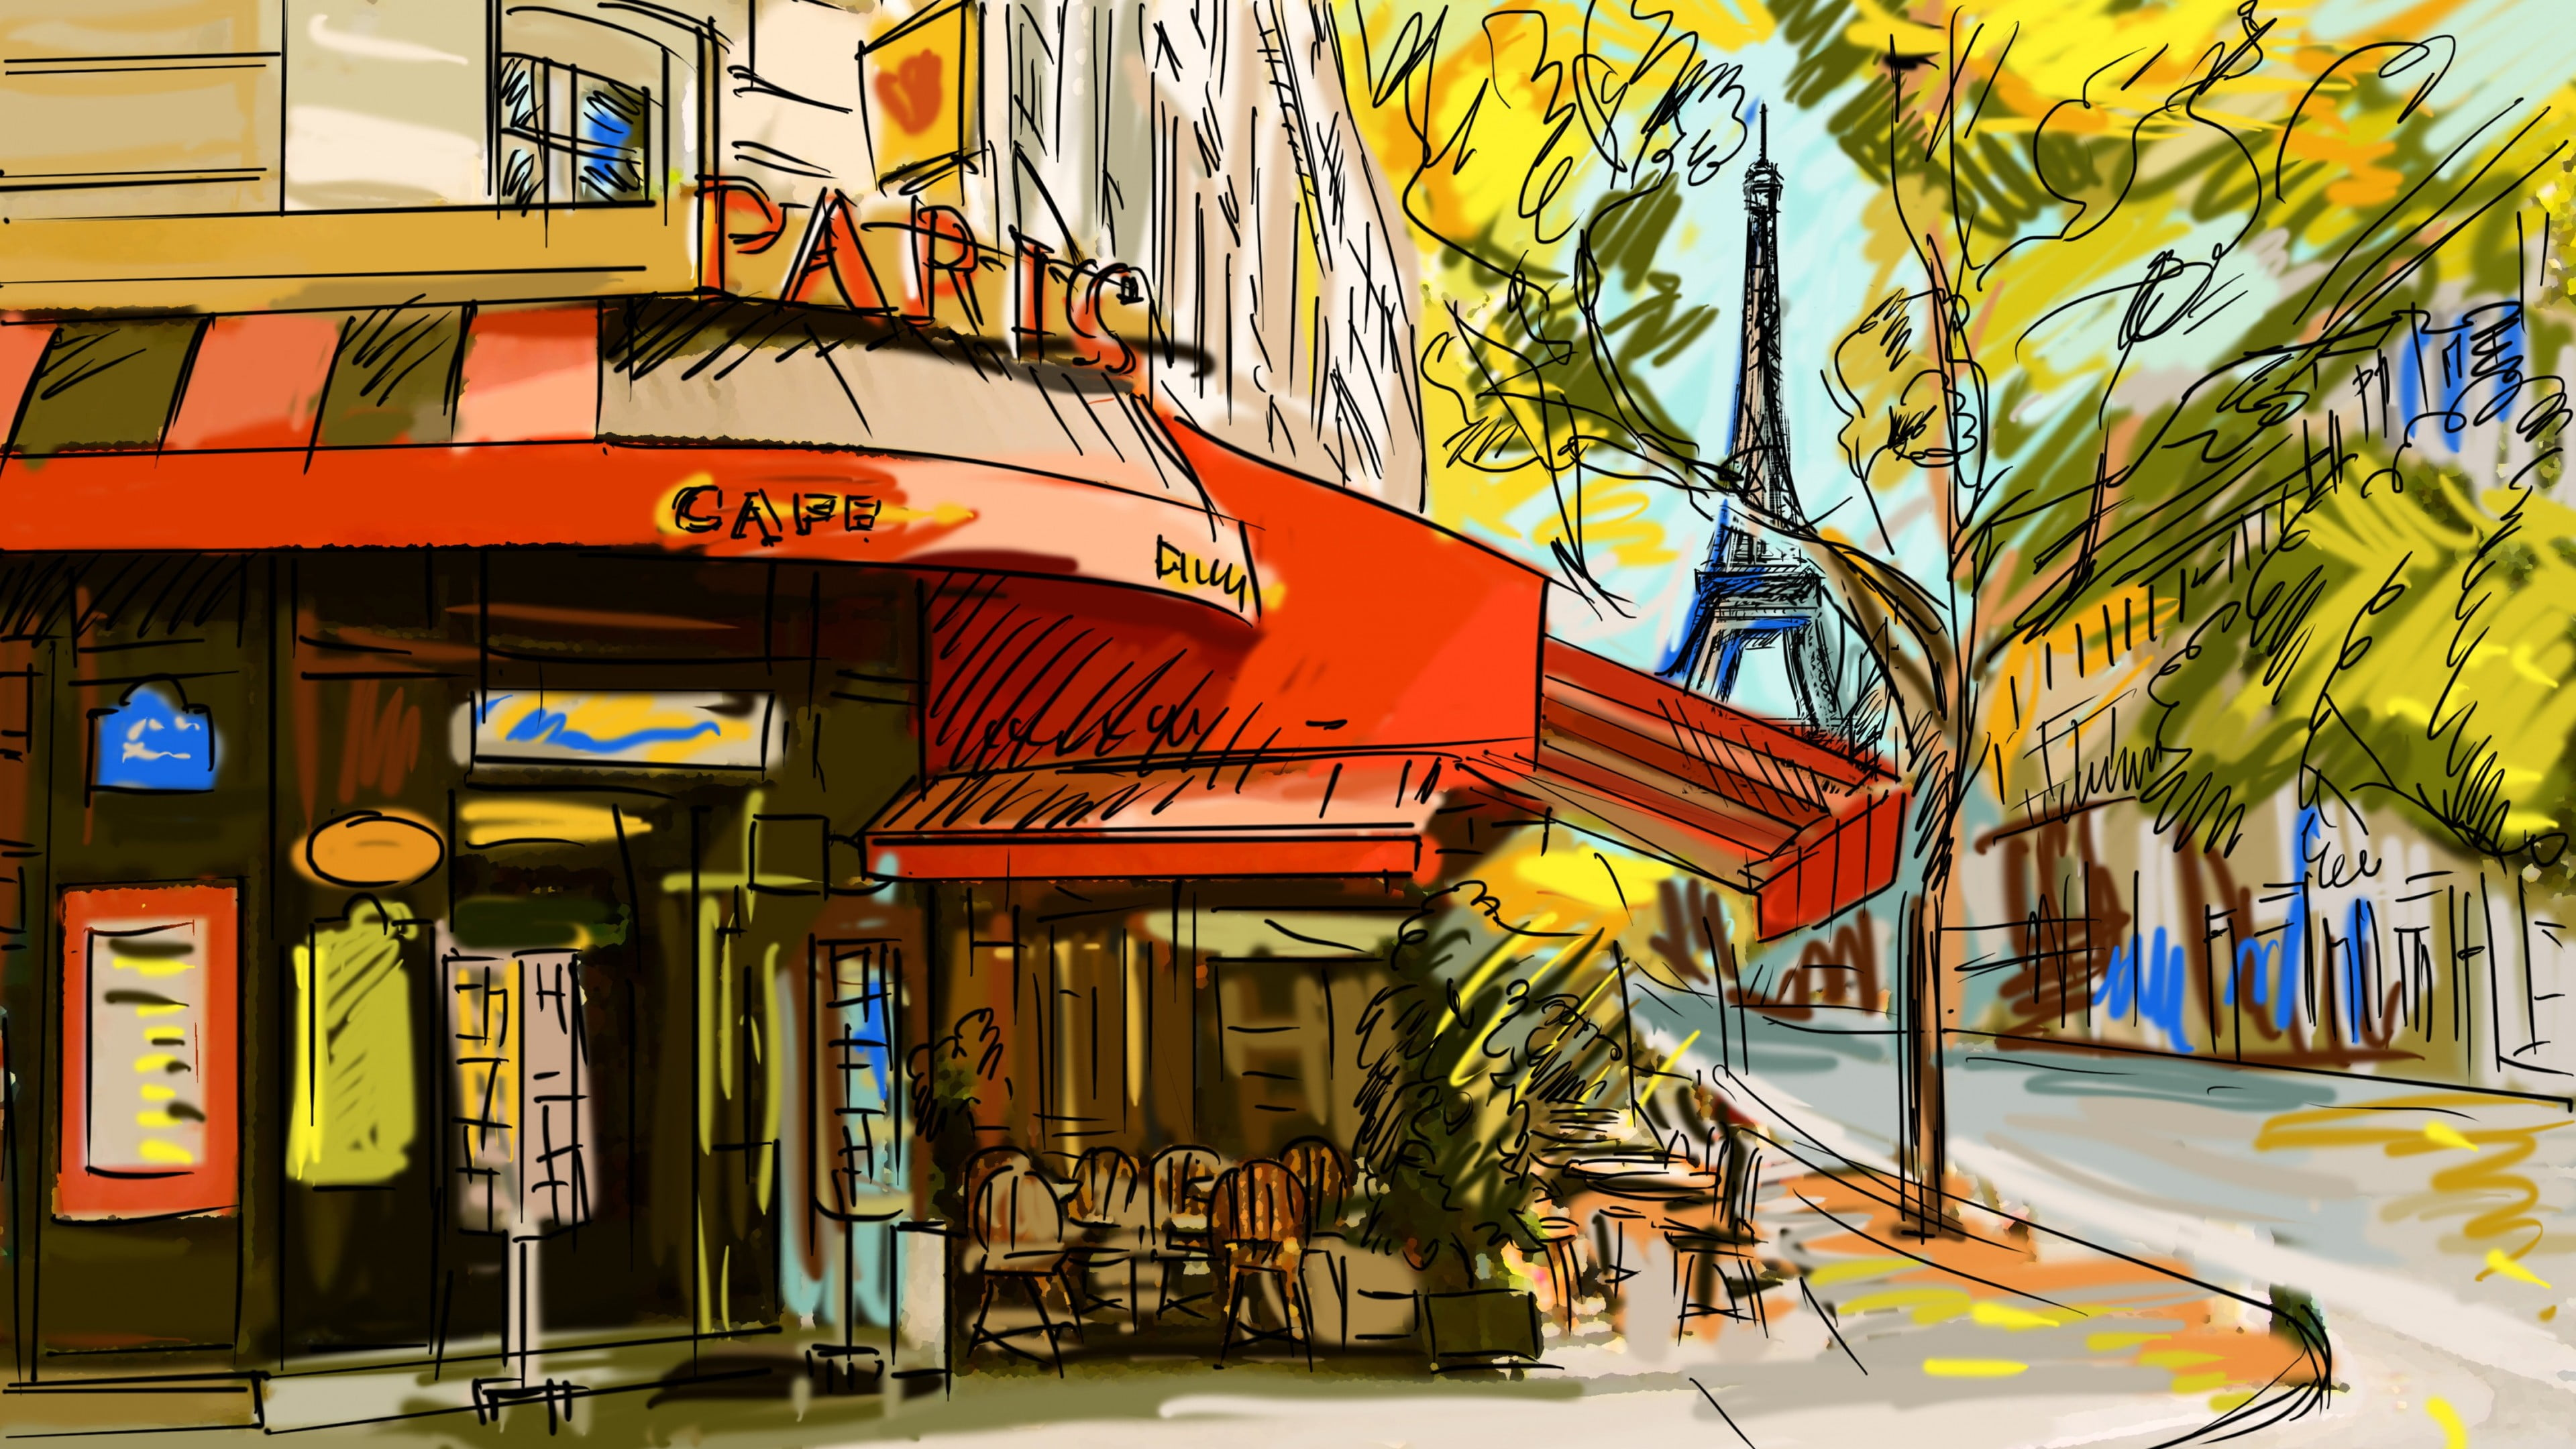 Eiffel tower with cafe in front clipart png library library Store front painting, sketches, cafes, Paris, Eiffel Tower HD ... png library library